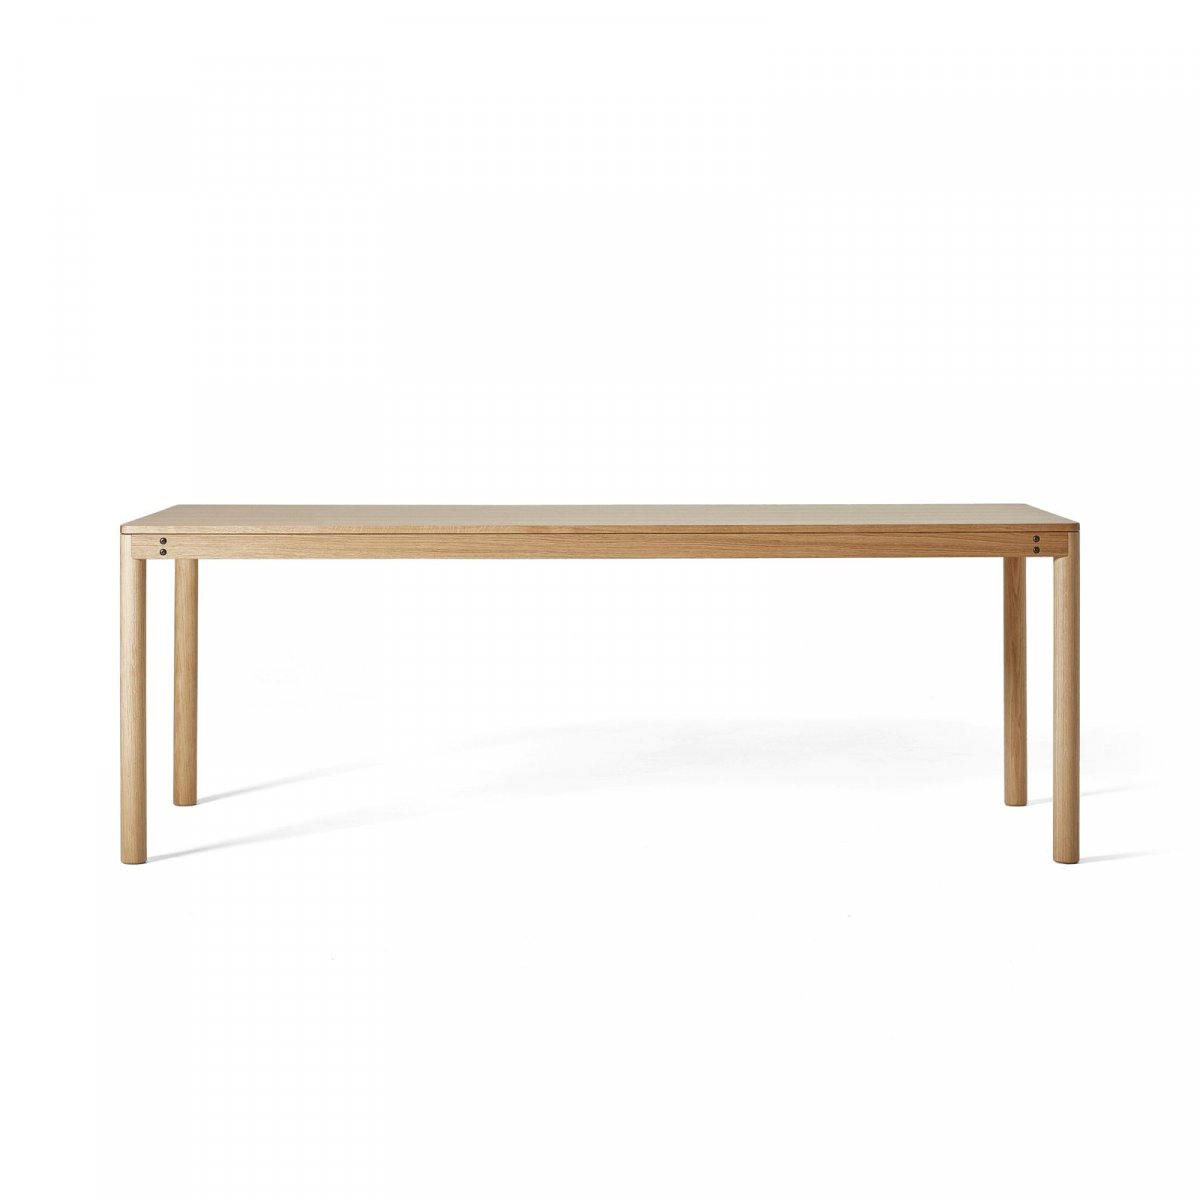 Dowel Table, oak.